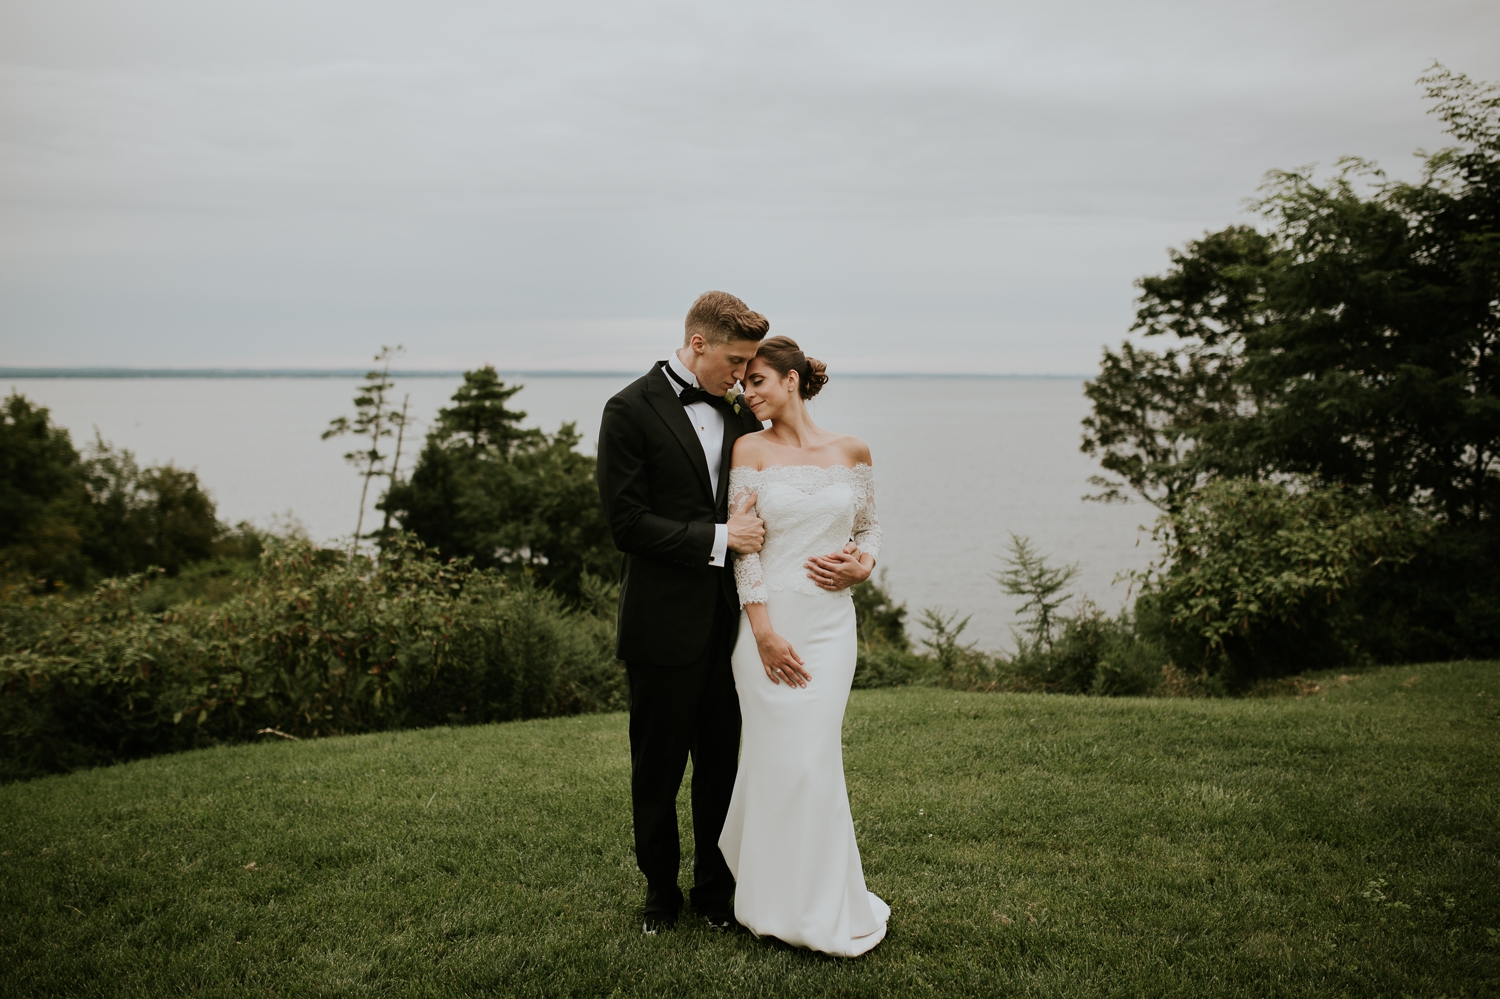 hempstead_house_new_york_wedding_photographer 95.jpg